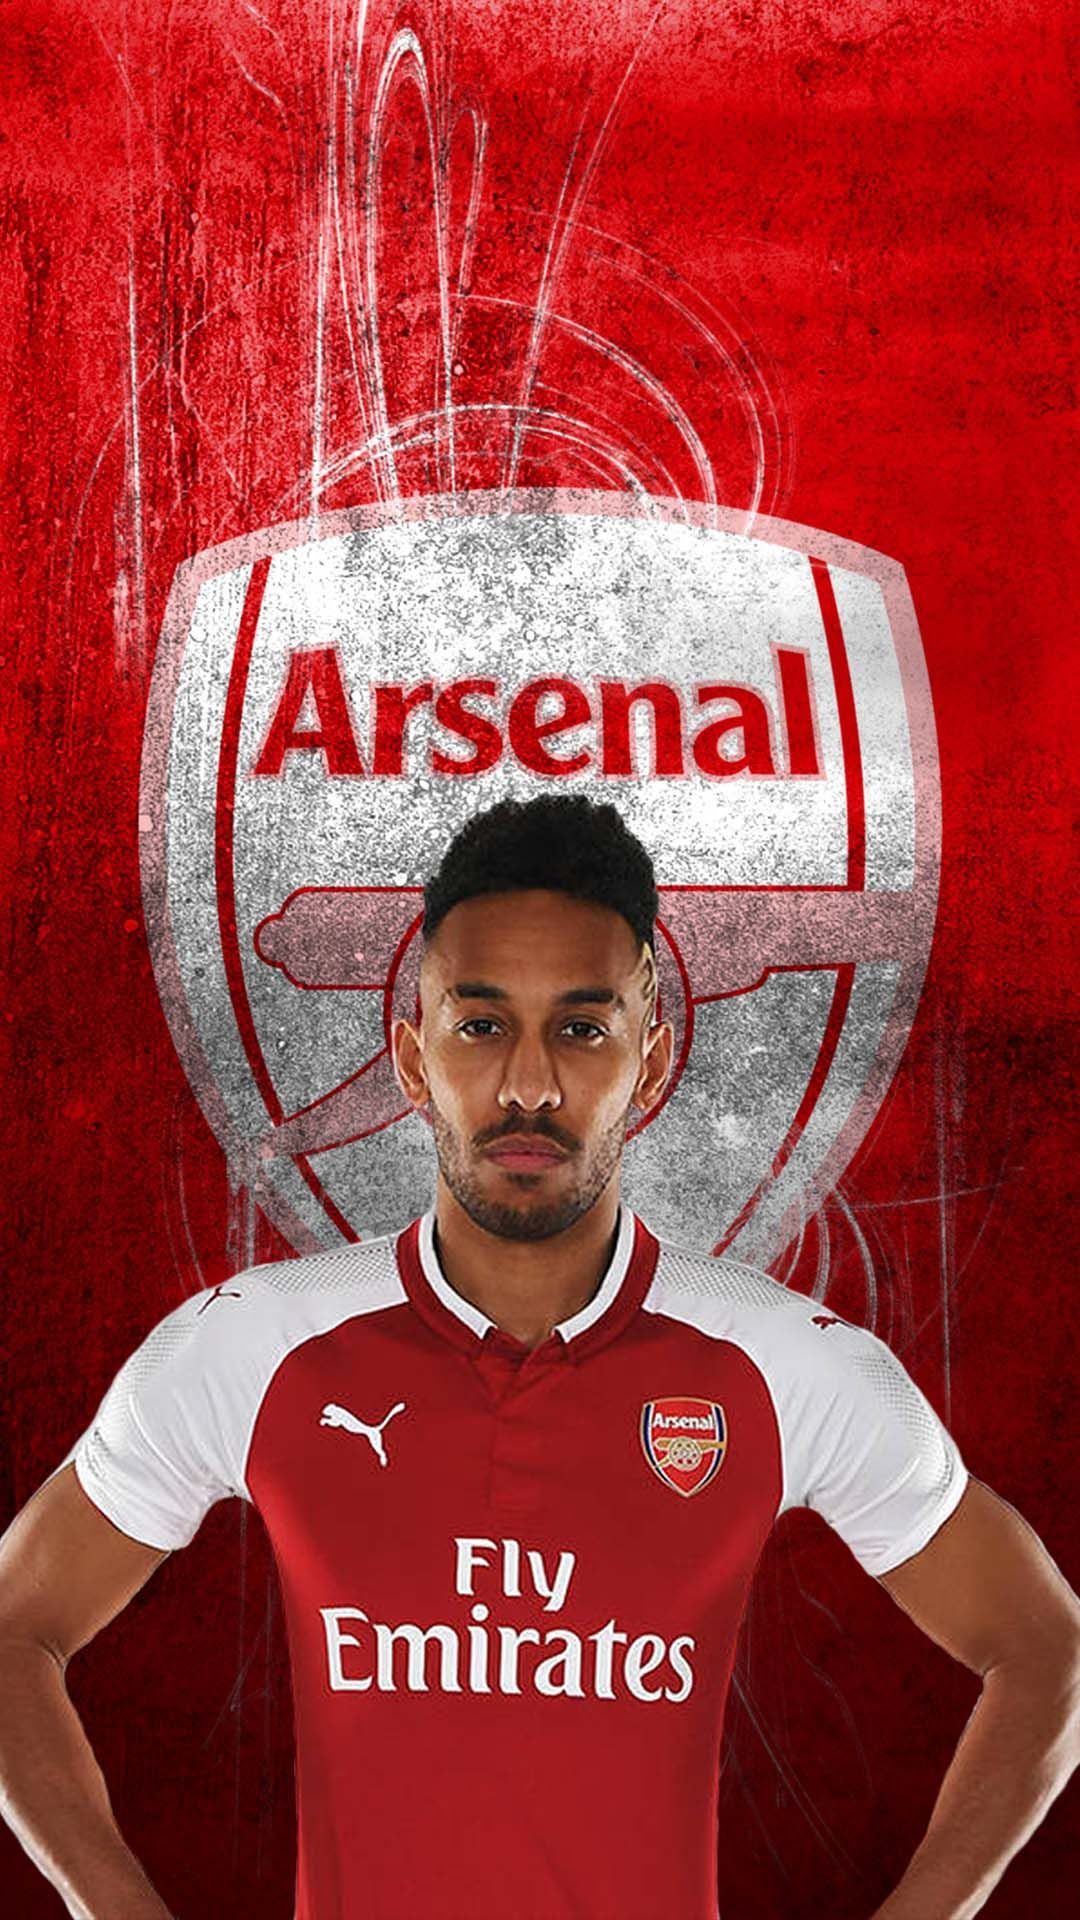 Aubameyang Arsenal Android Wallpaper   Best Android Wallpapers 1080x1920